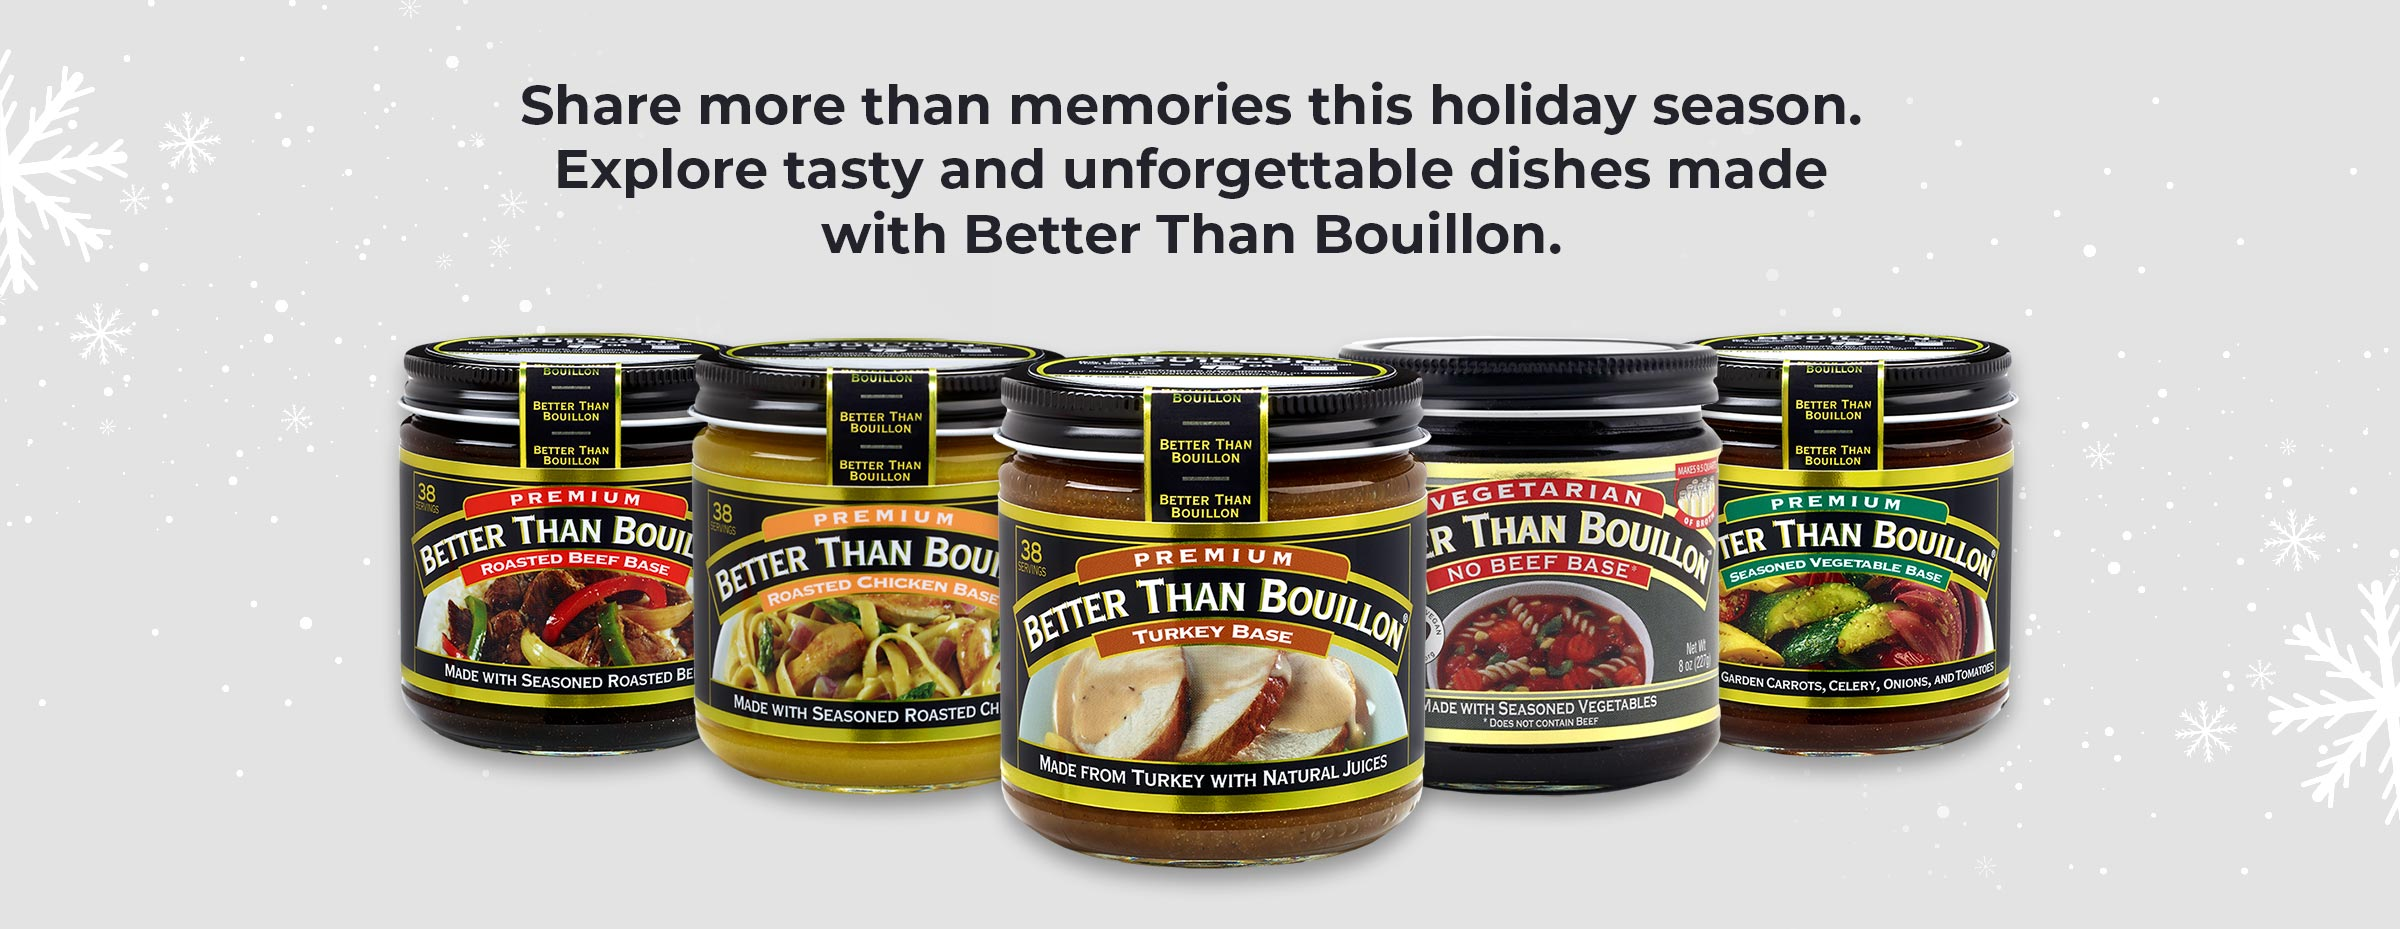 Share more than memories this holiday season. Explore tasty and unforgettable dishes made with Better Than Bouillon.